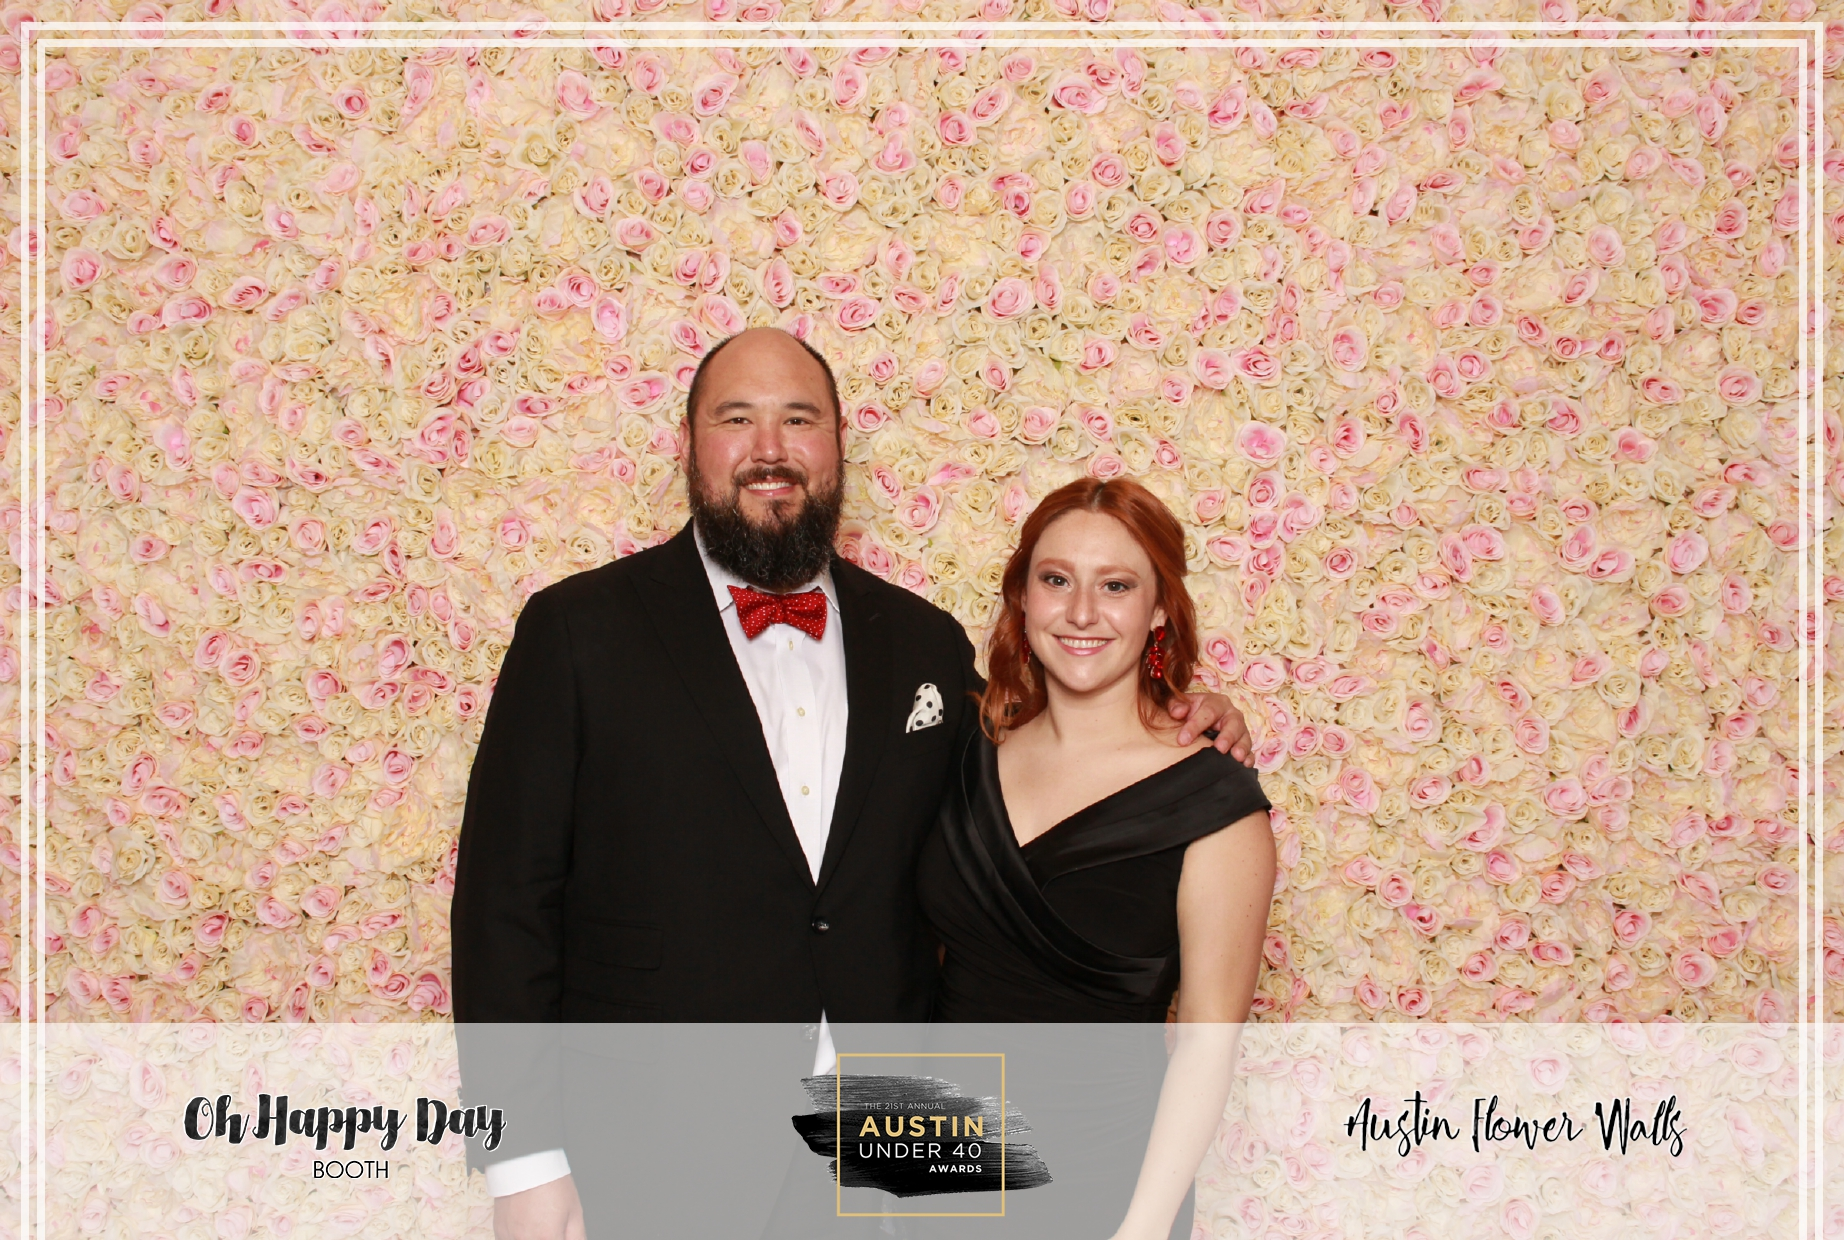 Oh Happy Day Booth - Austin Under 40-77.jpg